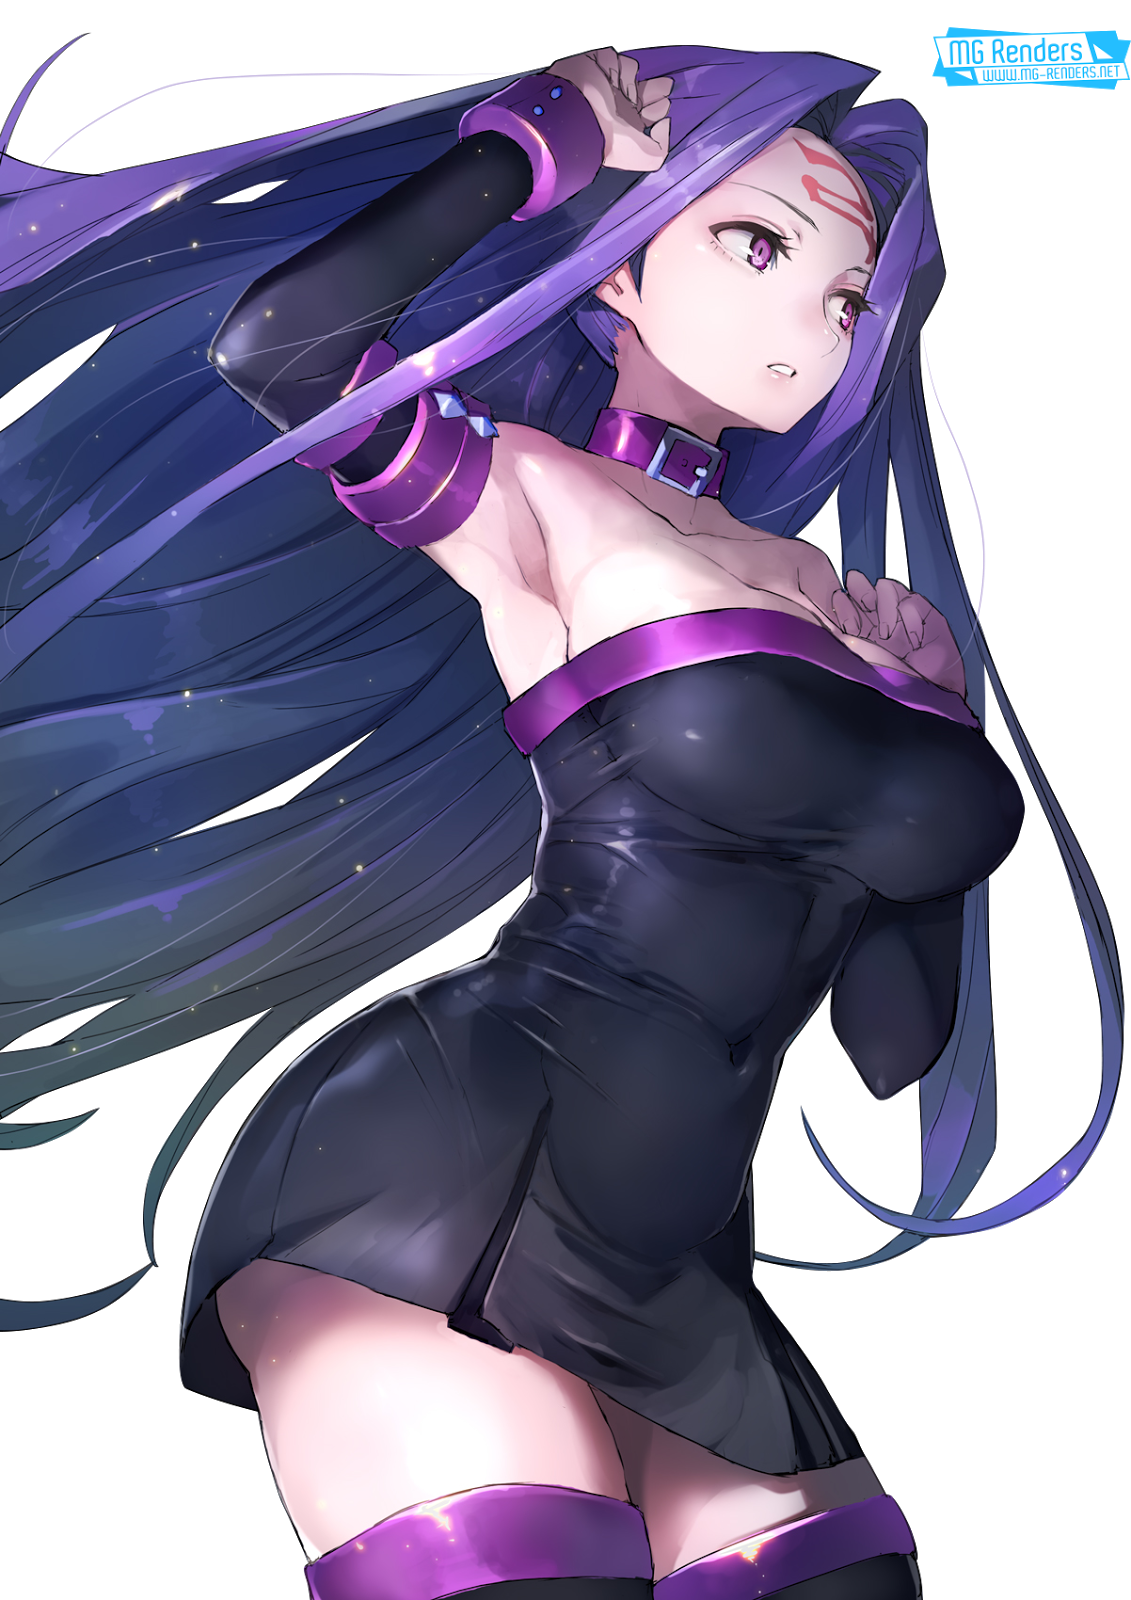 Tags: Anime, Render,  Armpit,  Arms up,  Bare shoulders,  Dress,  Fate stay night,  Huge Breasts,  Medusa,  Rider,  PNG, Image, Picture